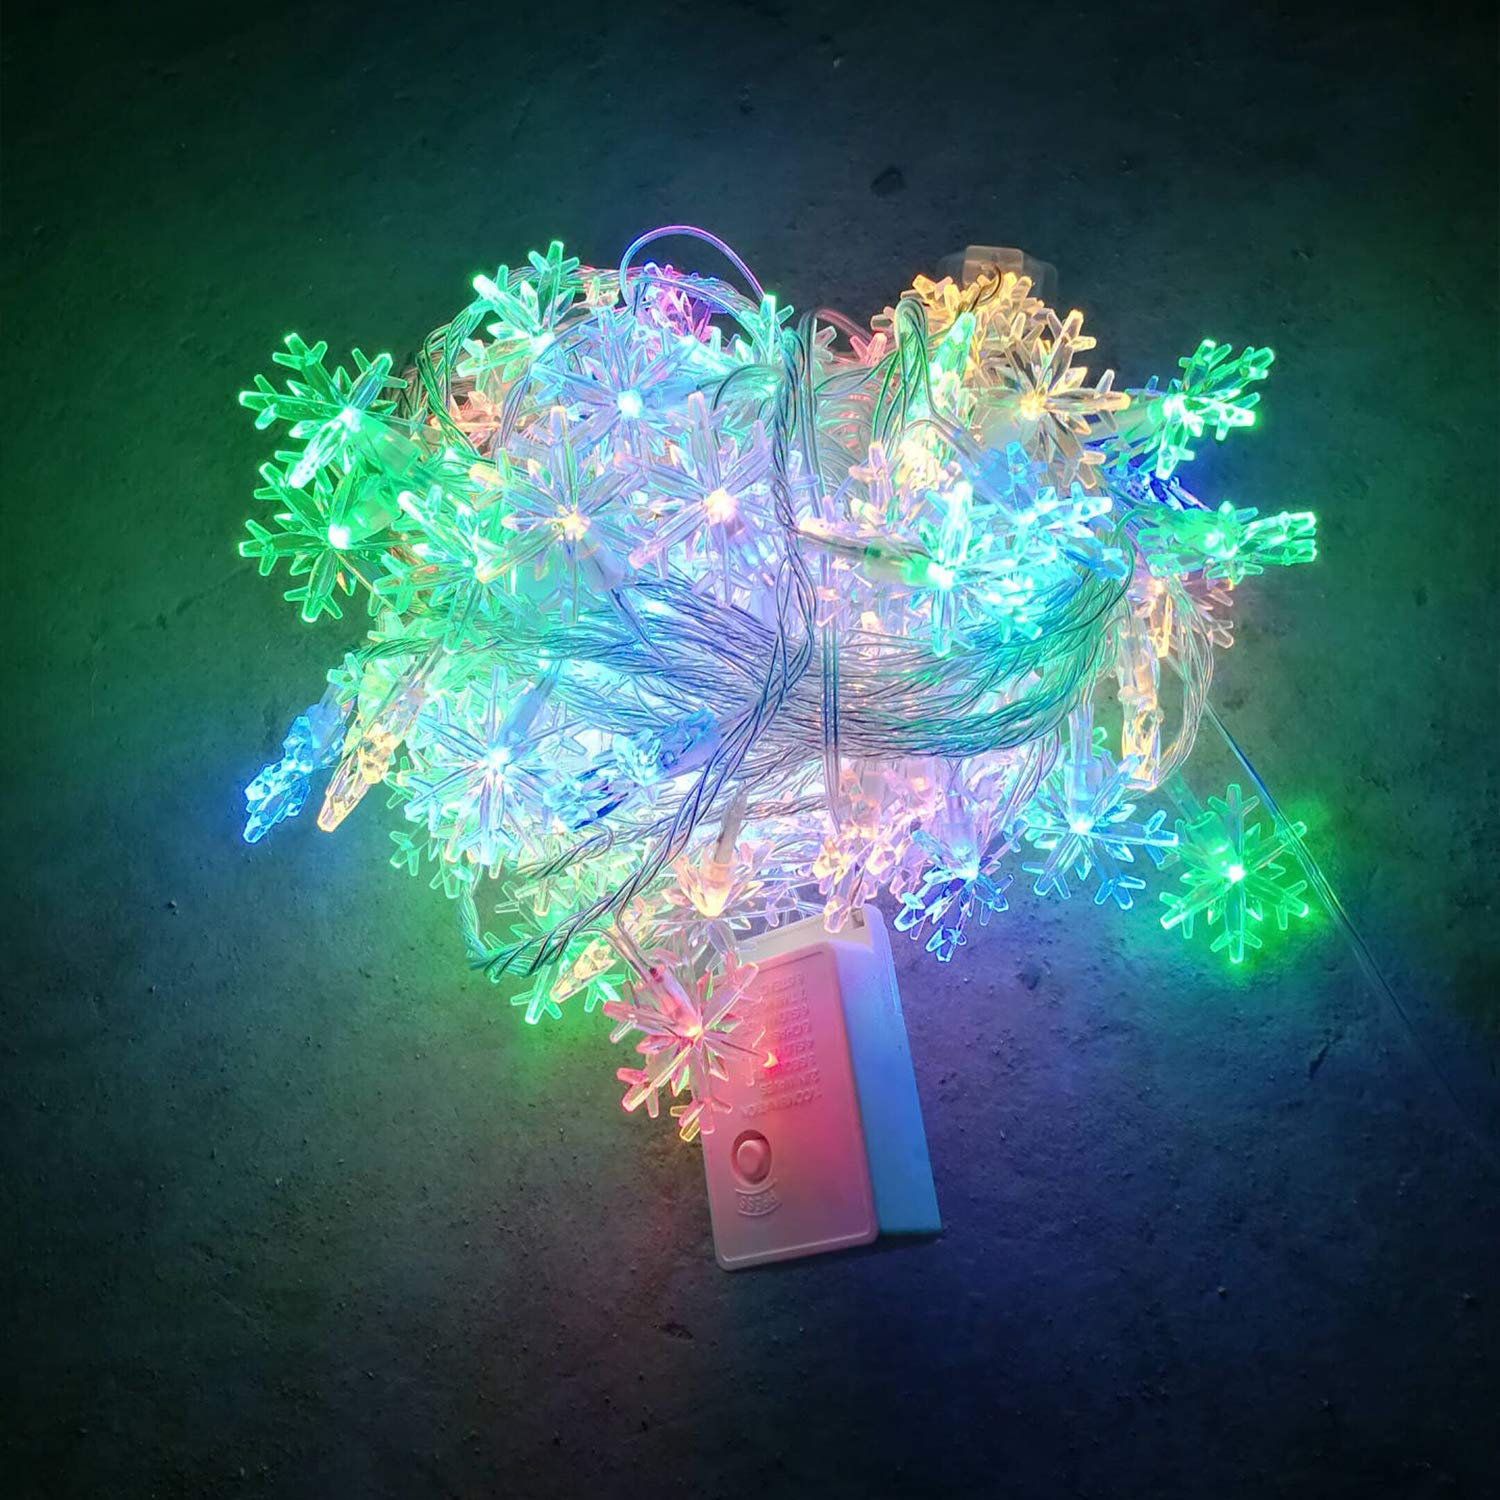 Upolymall LED 10 m Color Snowflake String String String Holiday Party Decoration Lights AA Battery Lights, Fairy Lights, Wedding Lights, Backyard Lights, Christmas Lights, Outdoor Interior Light d51087